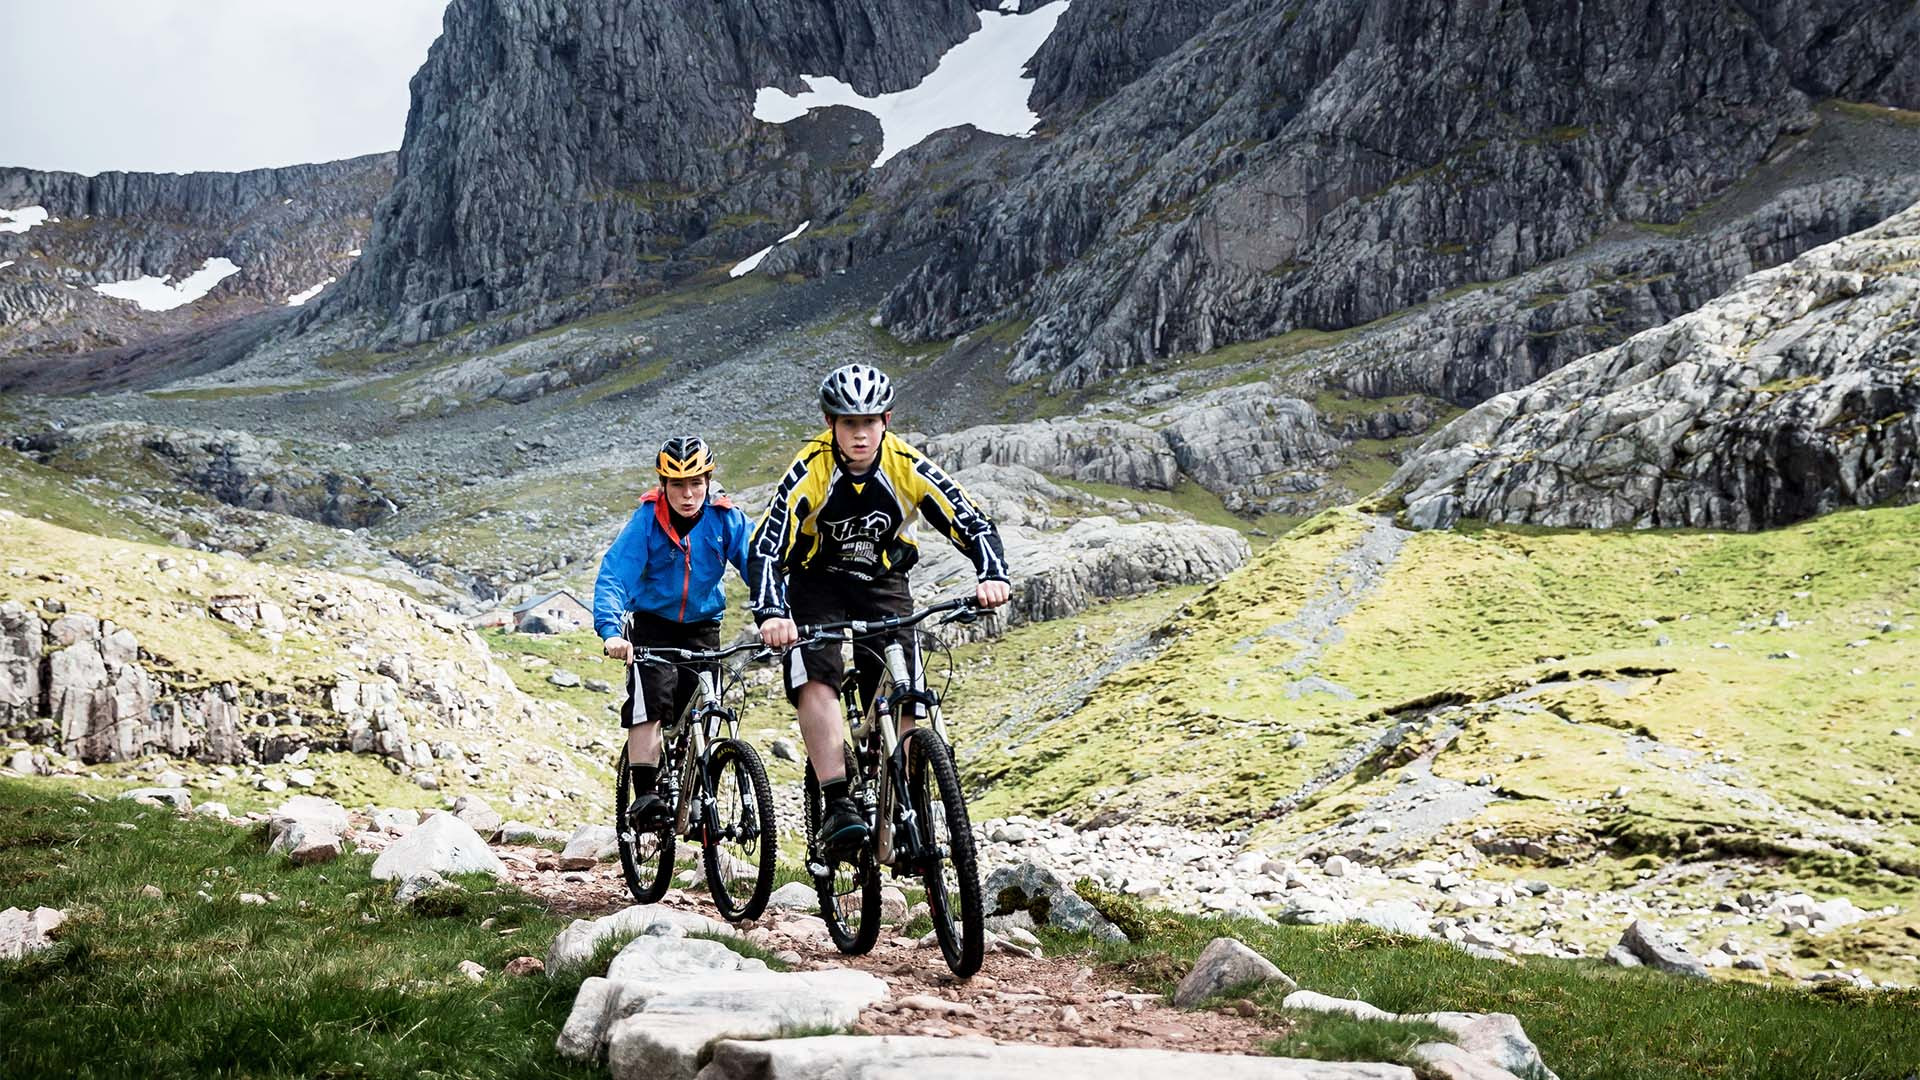 Mountain bikers at Ben Nevis, Scotland